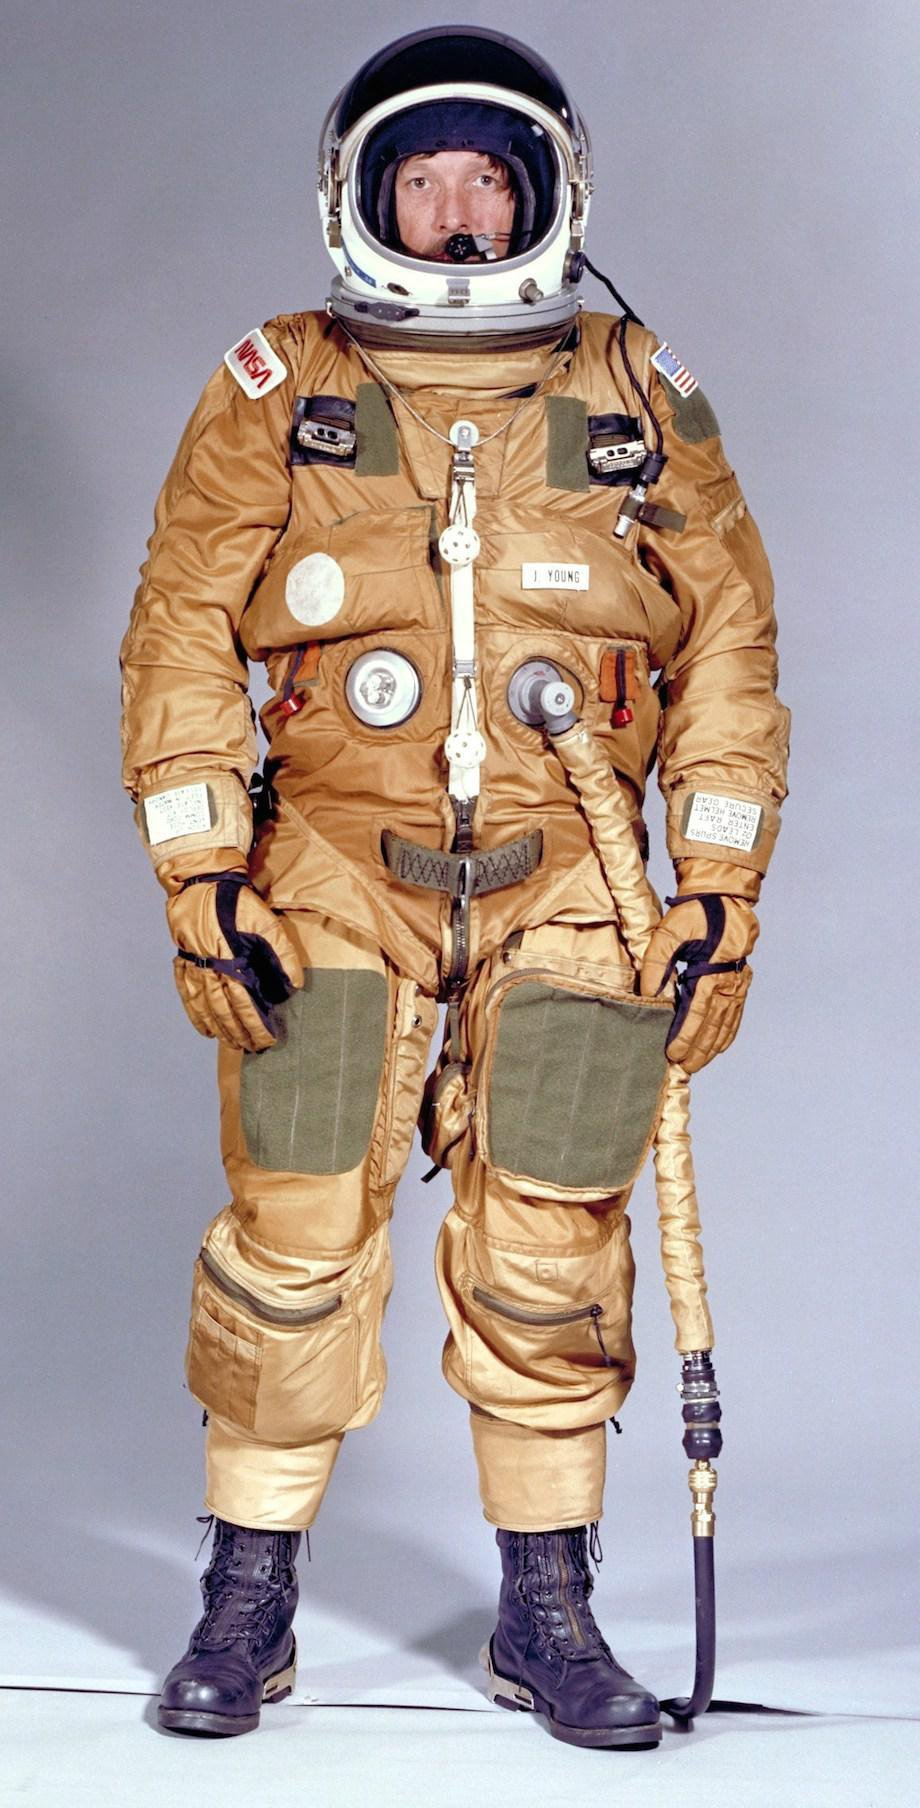 check-out-the-evolution-of-the-space-suit-41-hq-photos-21